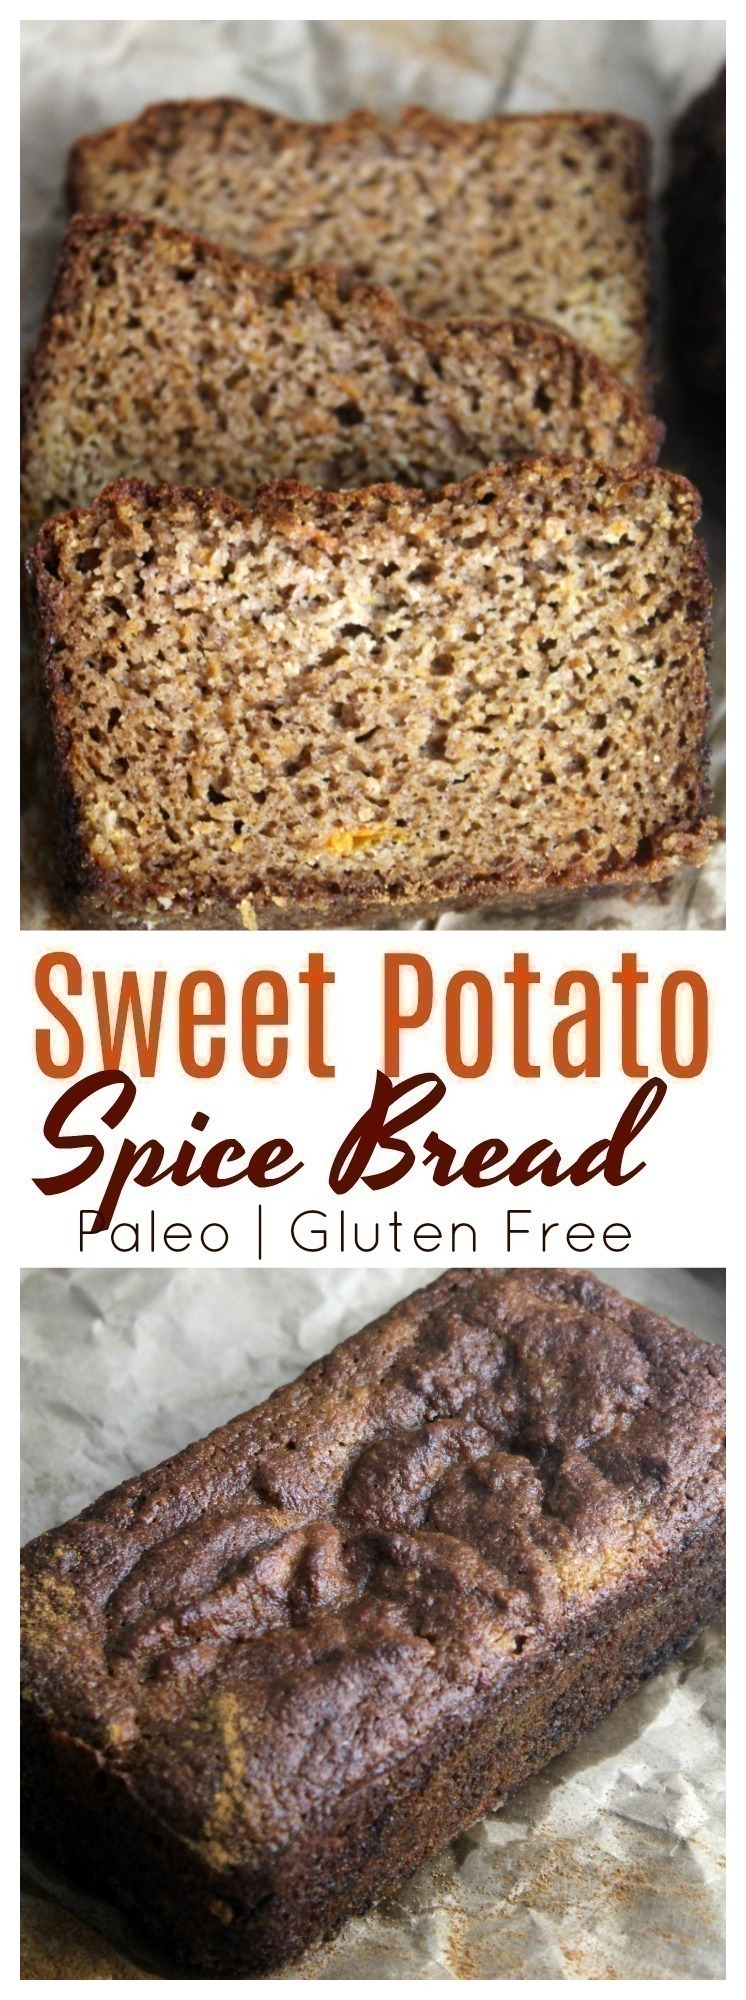 A simple, paleo and gluten free sweet potato spice bread that you can enjoy without any guilt!